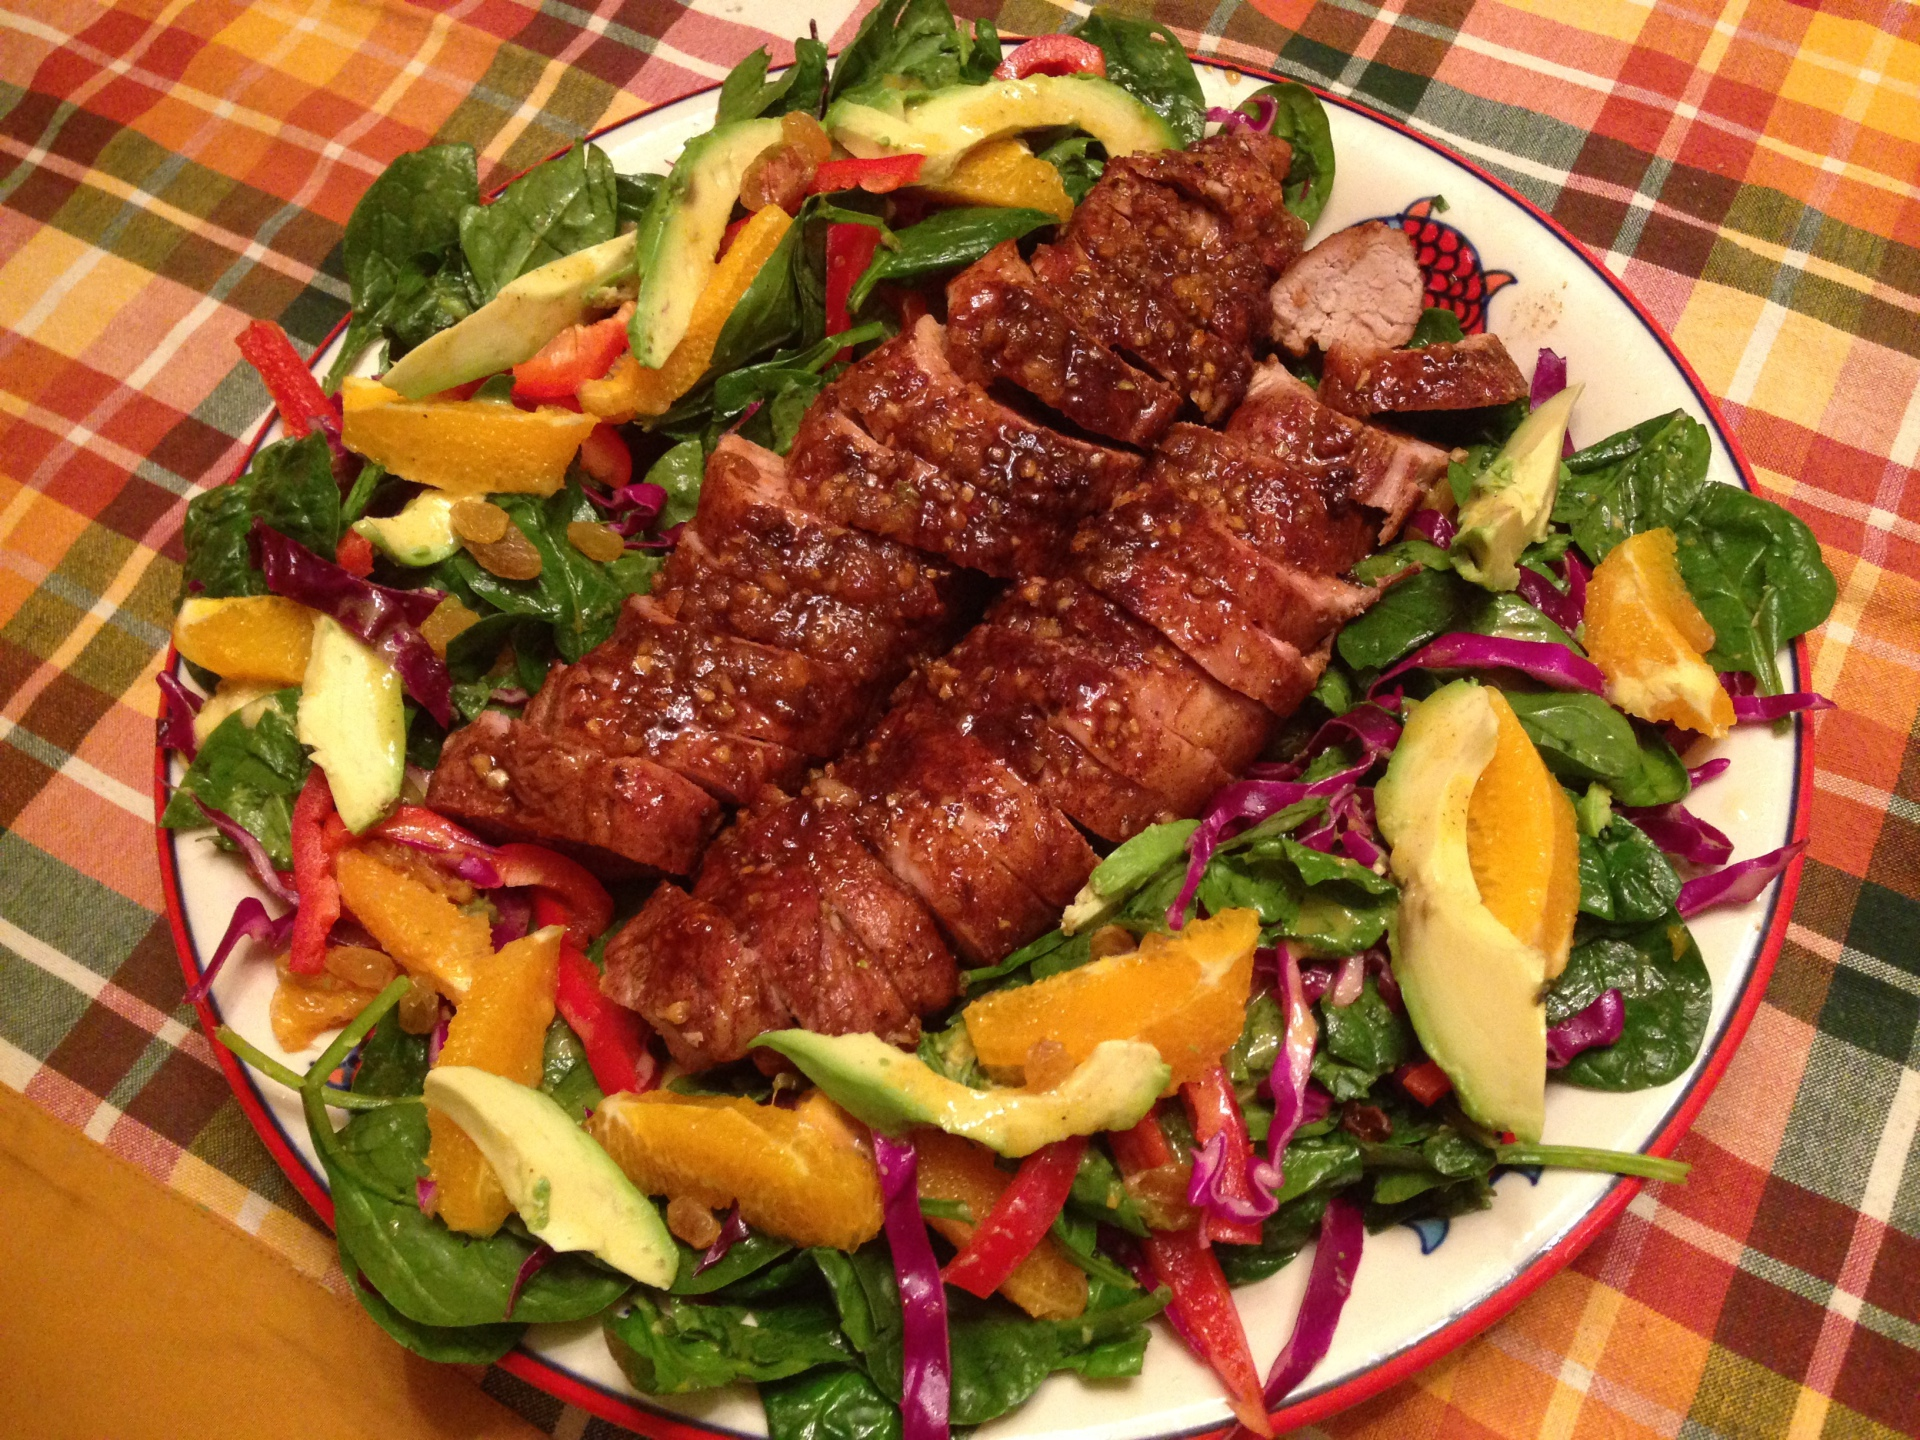 My Birthday Pork Tenderloin Salad